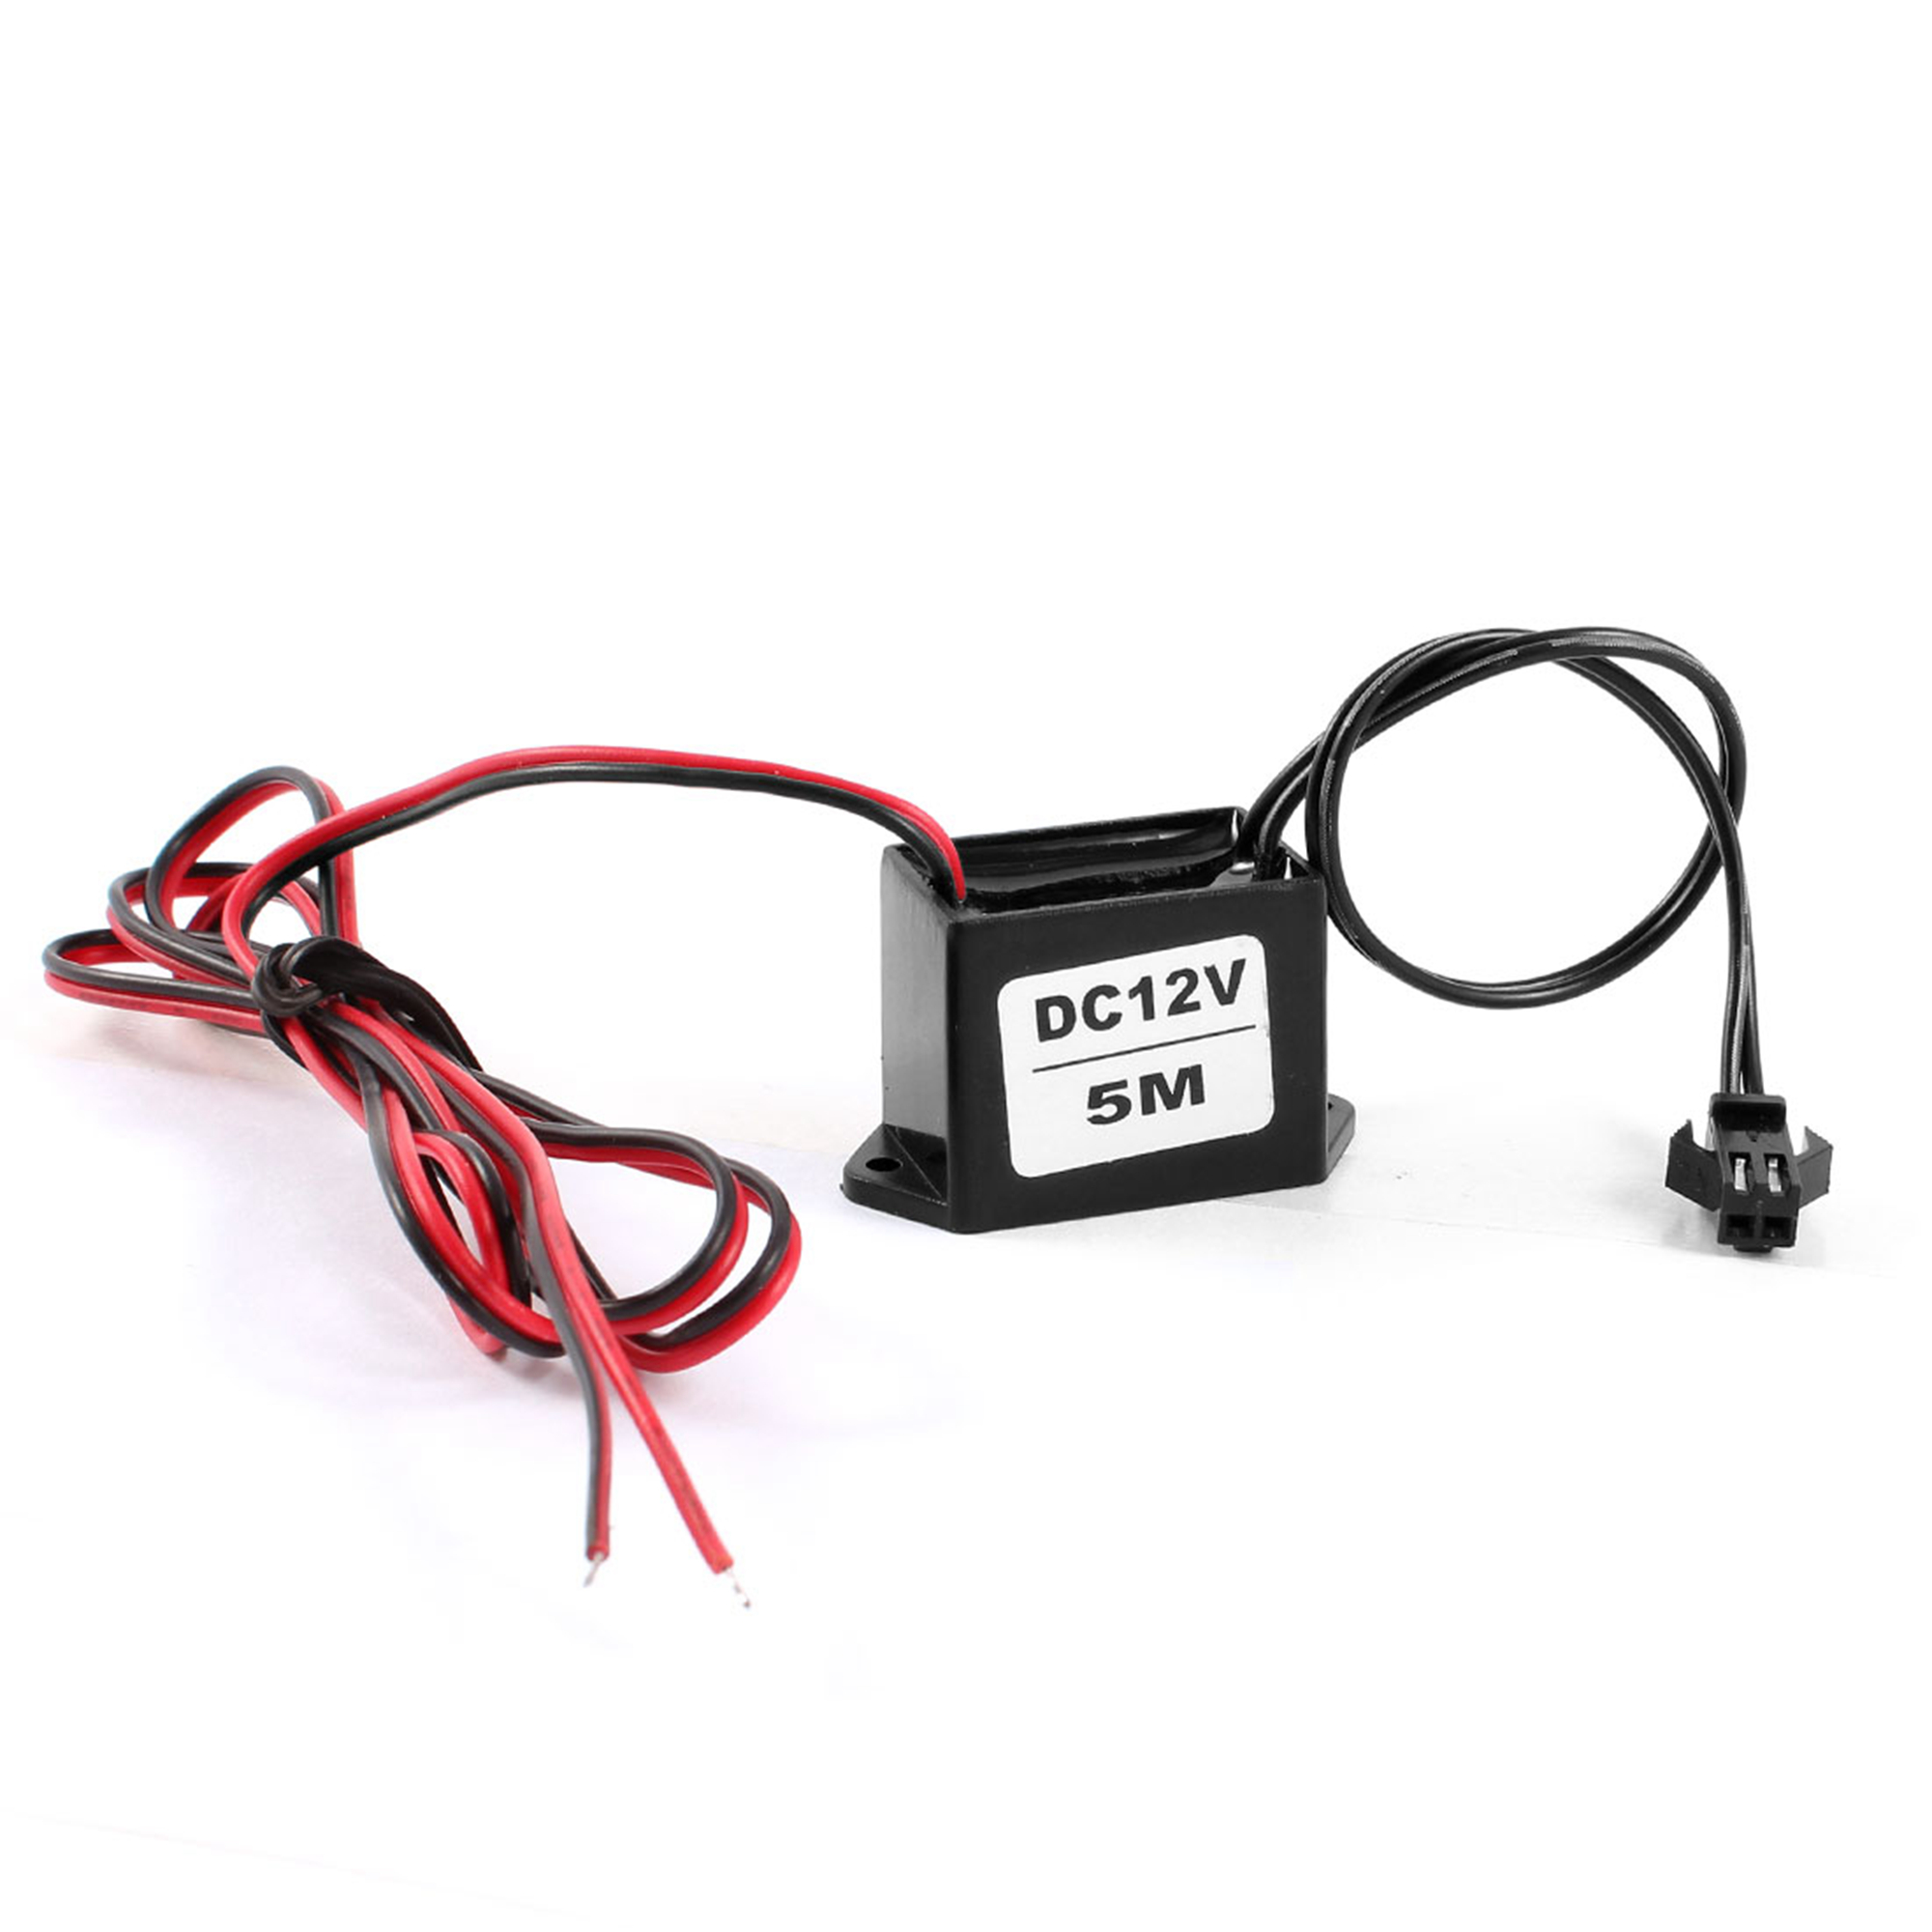 Red Black Cable DC 12V EL Wire Neon Glow Strip Light Driver Unit Inverter